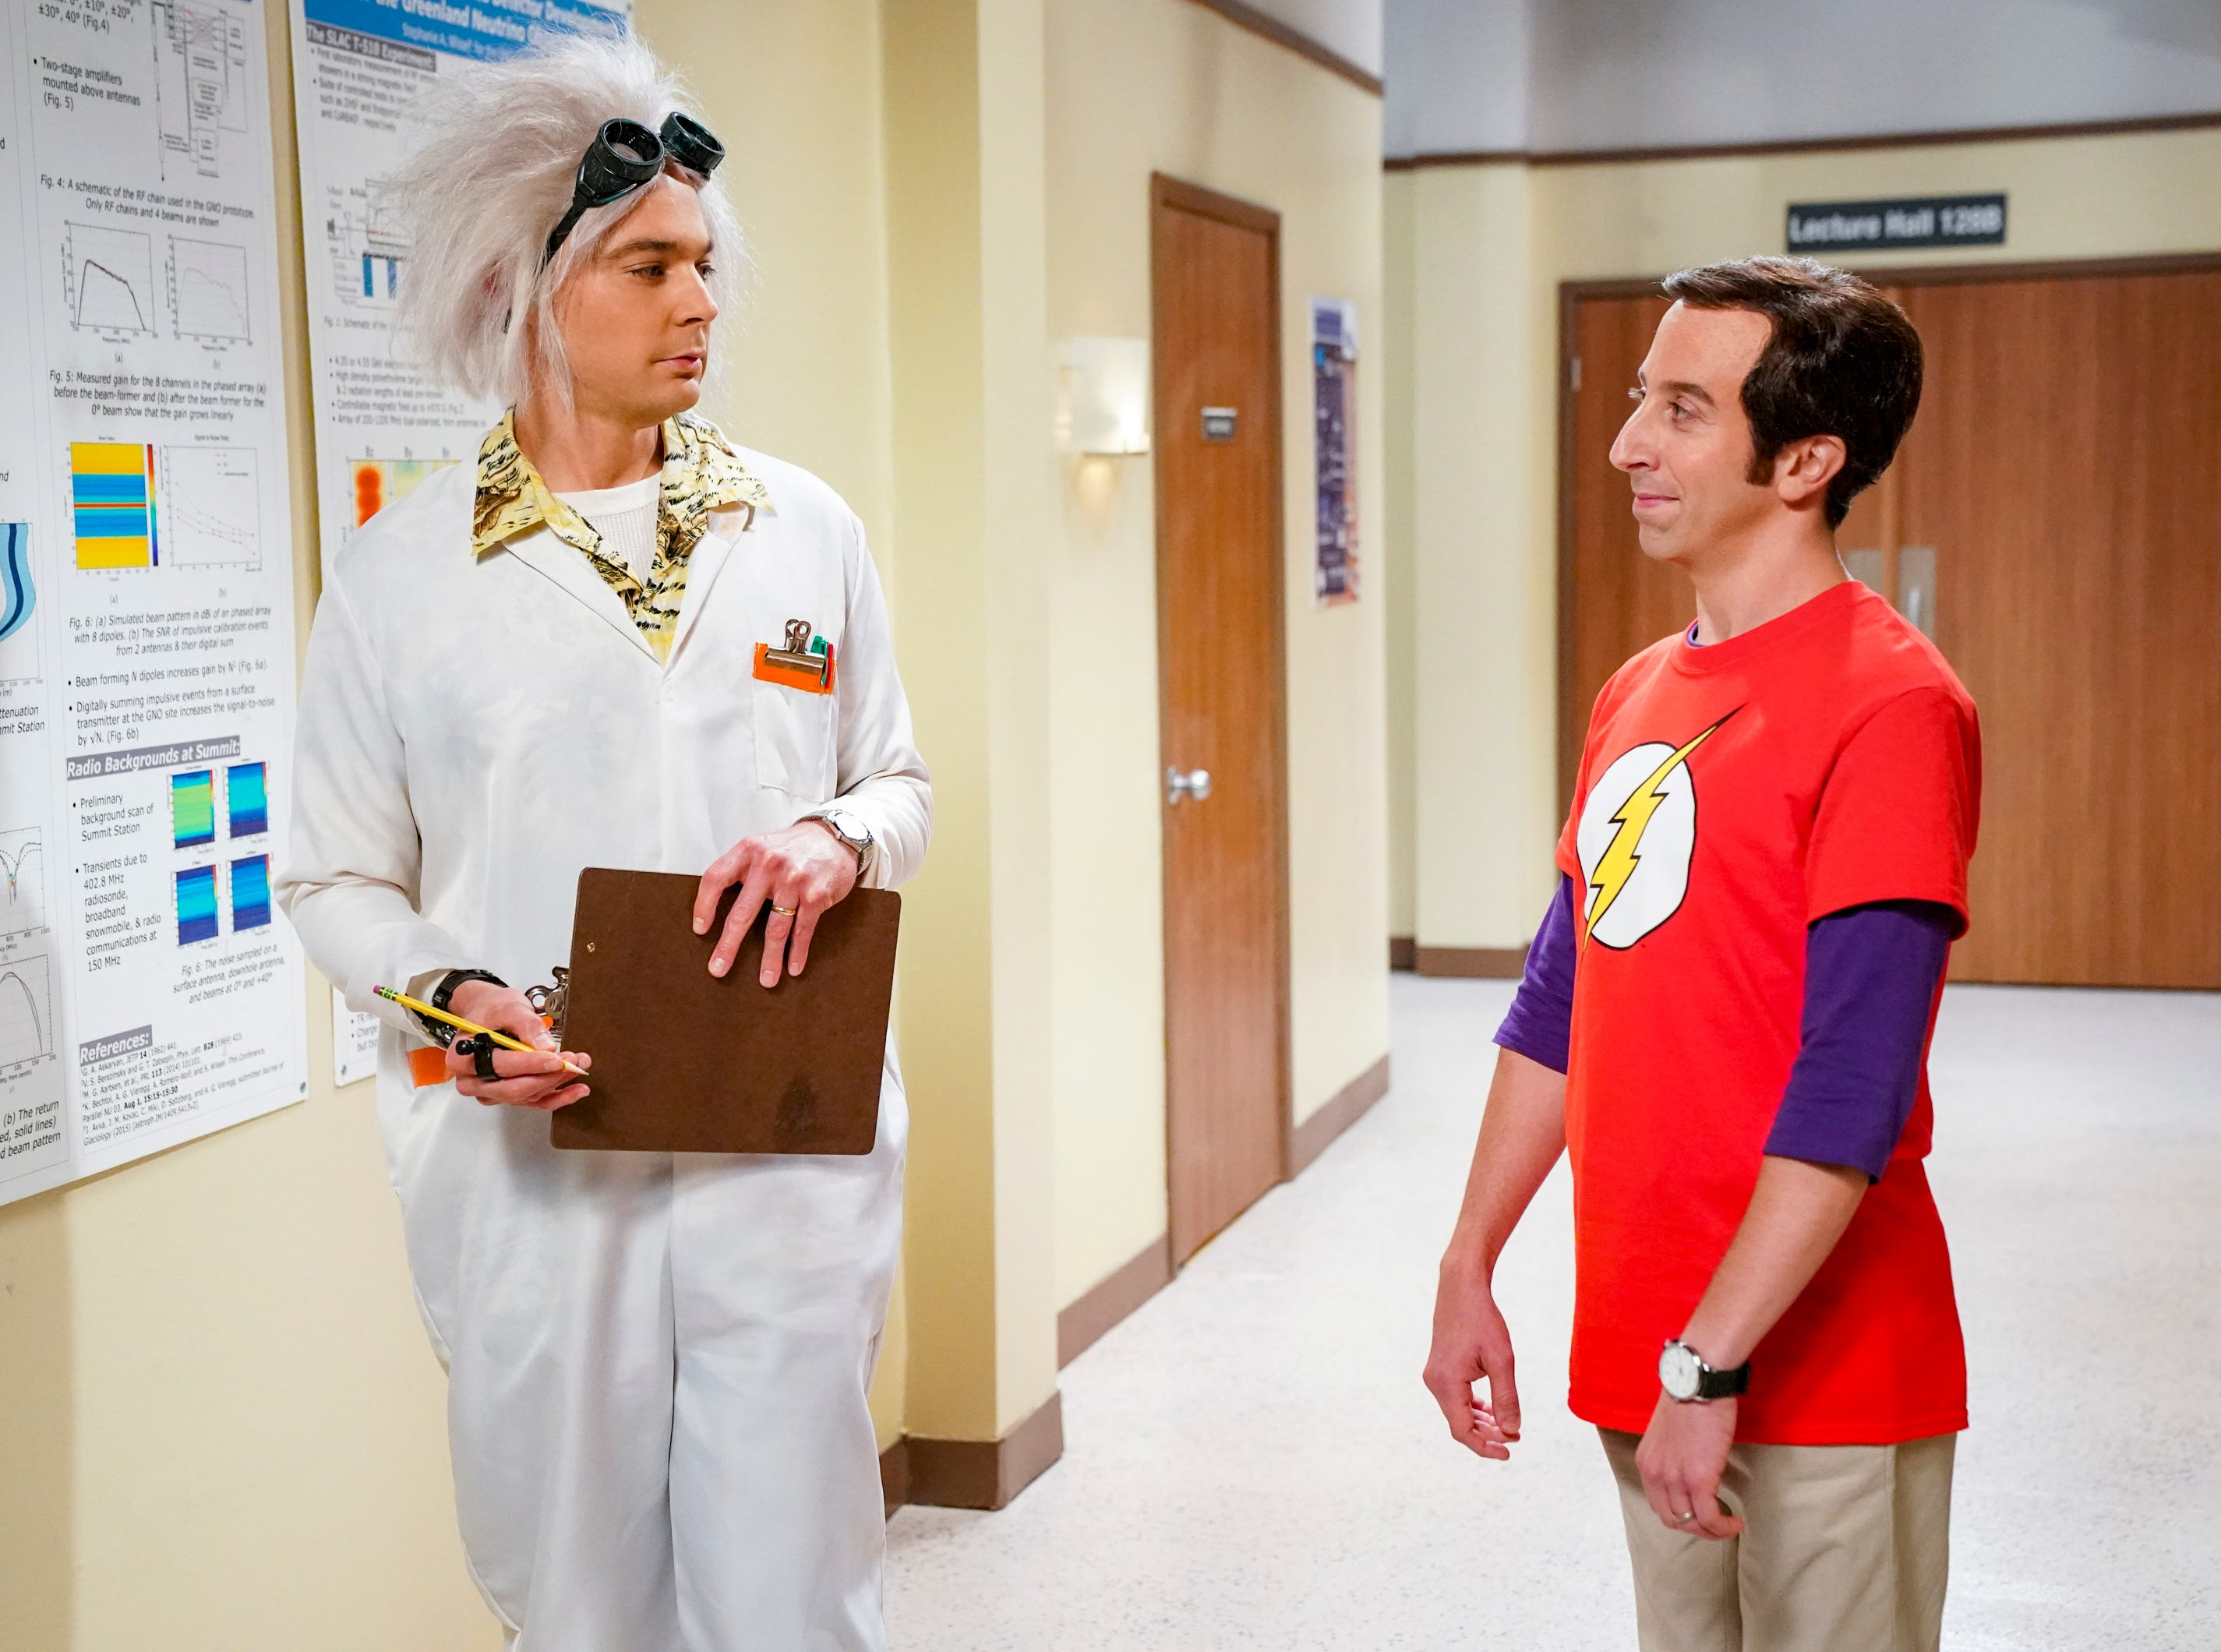 Something seems familiar about Howard's (Simon Helberg) costume at work, but Sheldon (Jim Parsons) may have some trouble figuring out exactly what it is.